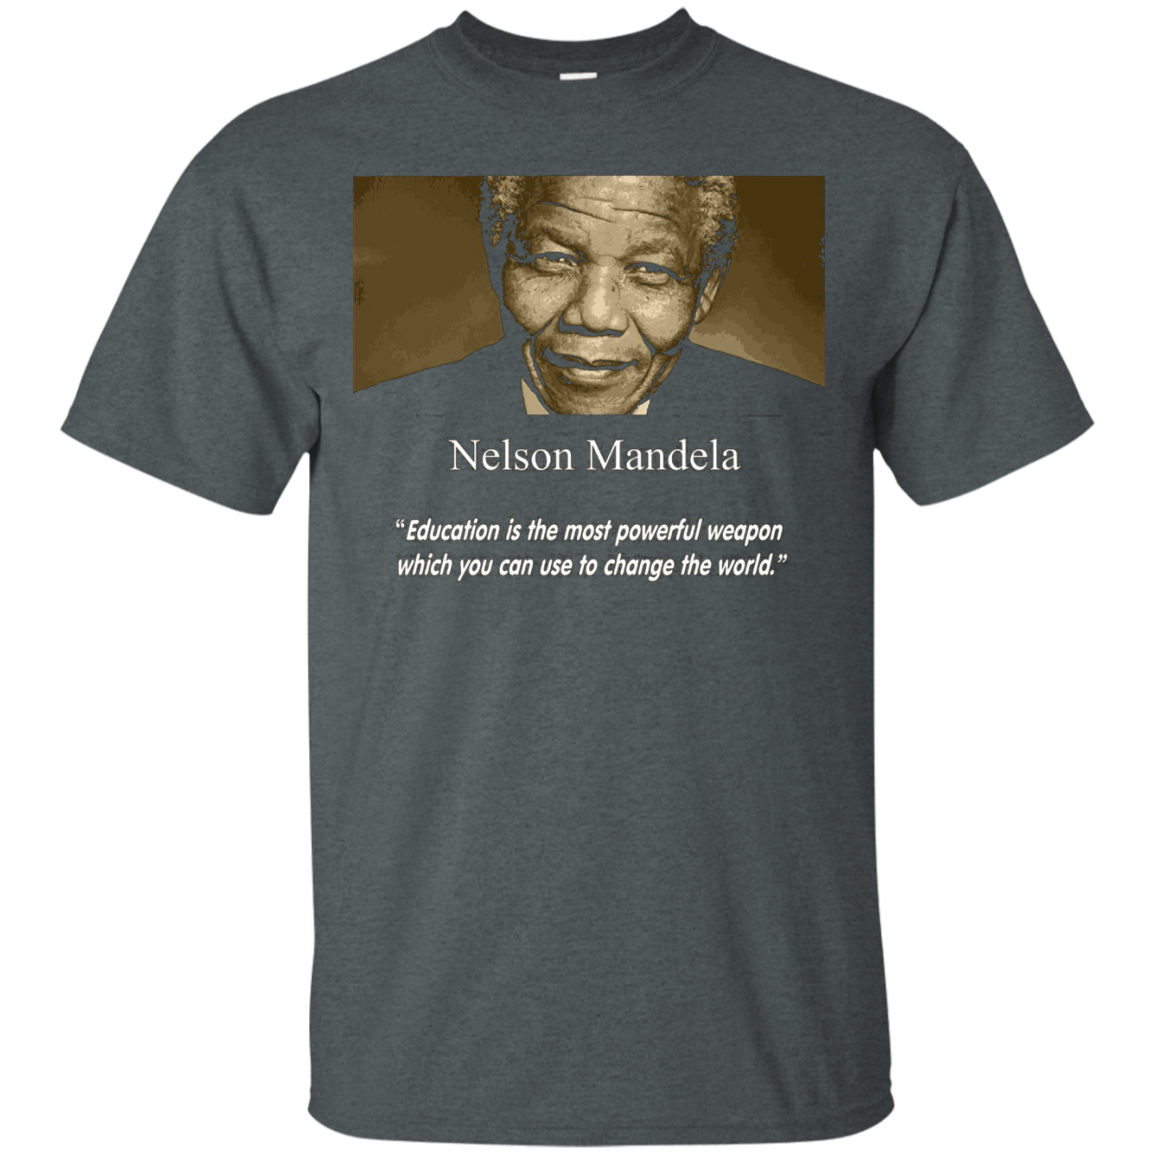 Nelson Mandela Shirt - Education is the most powerful weapon